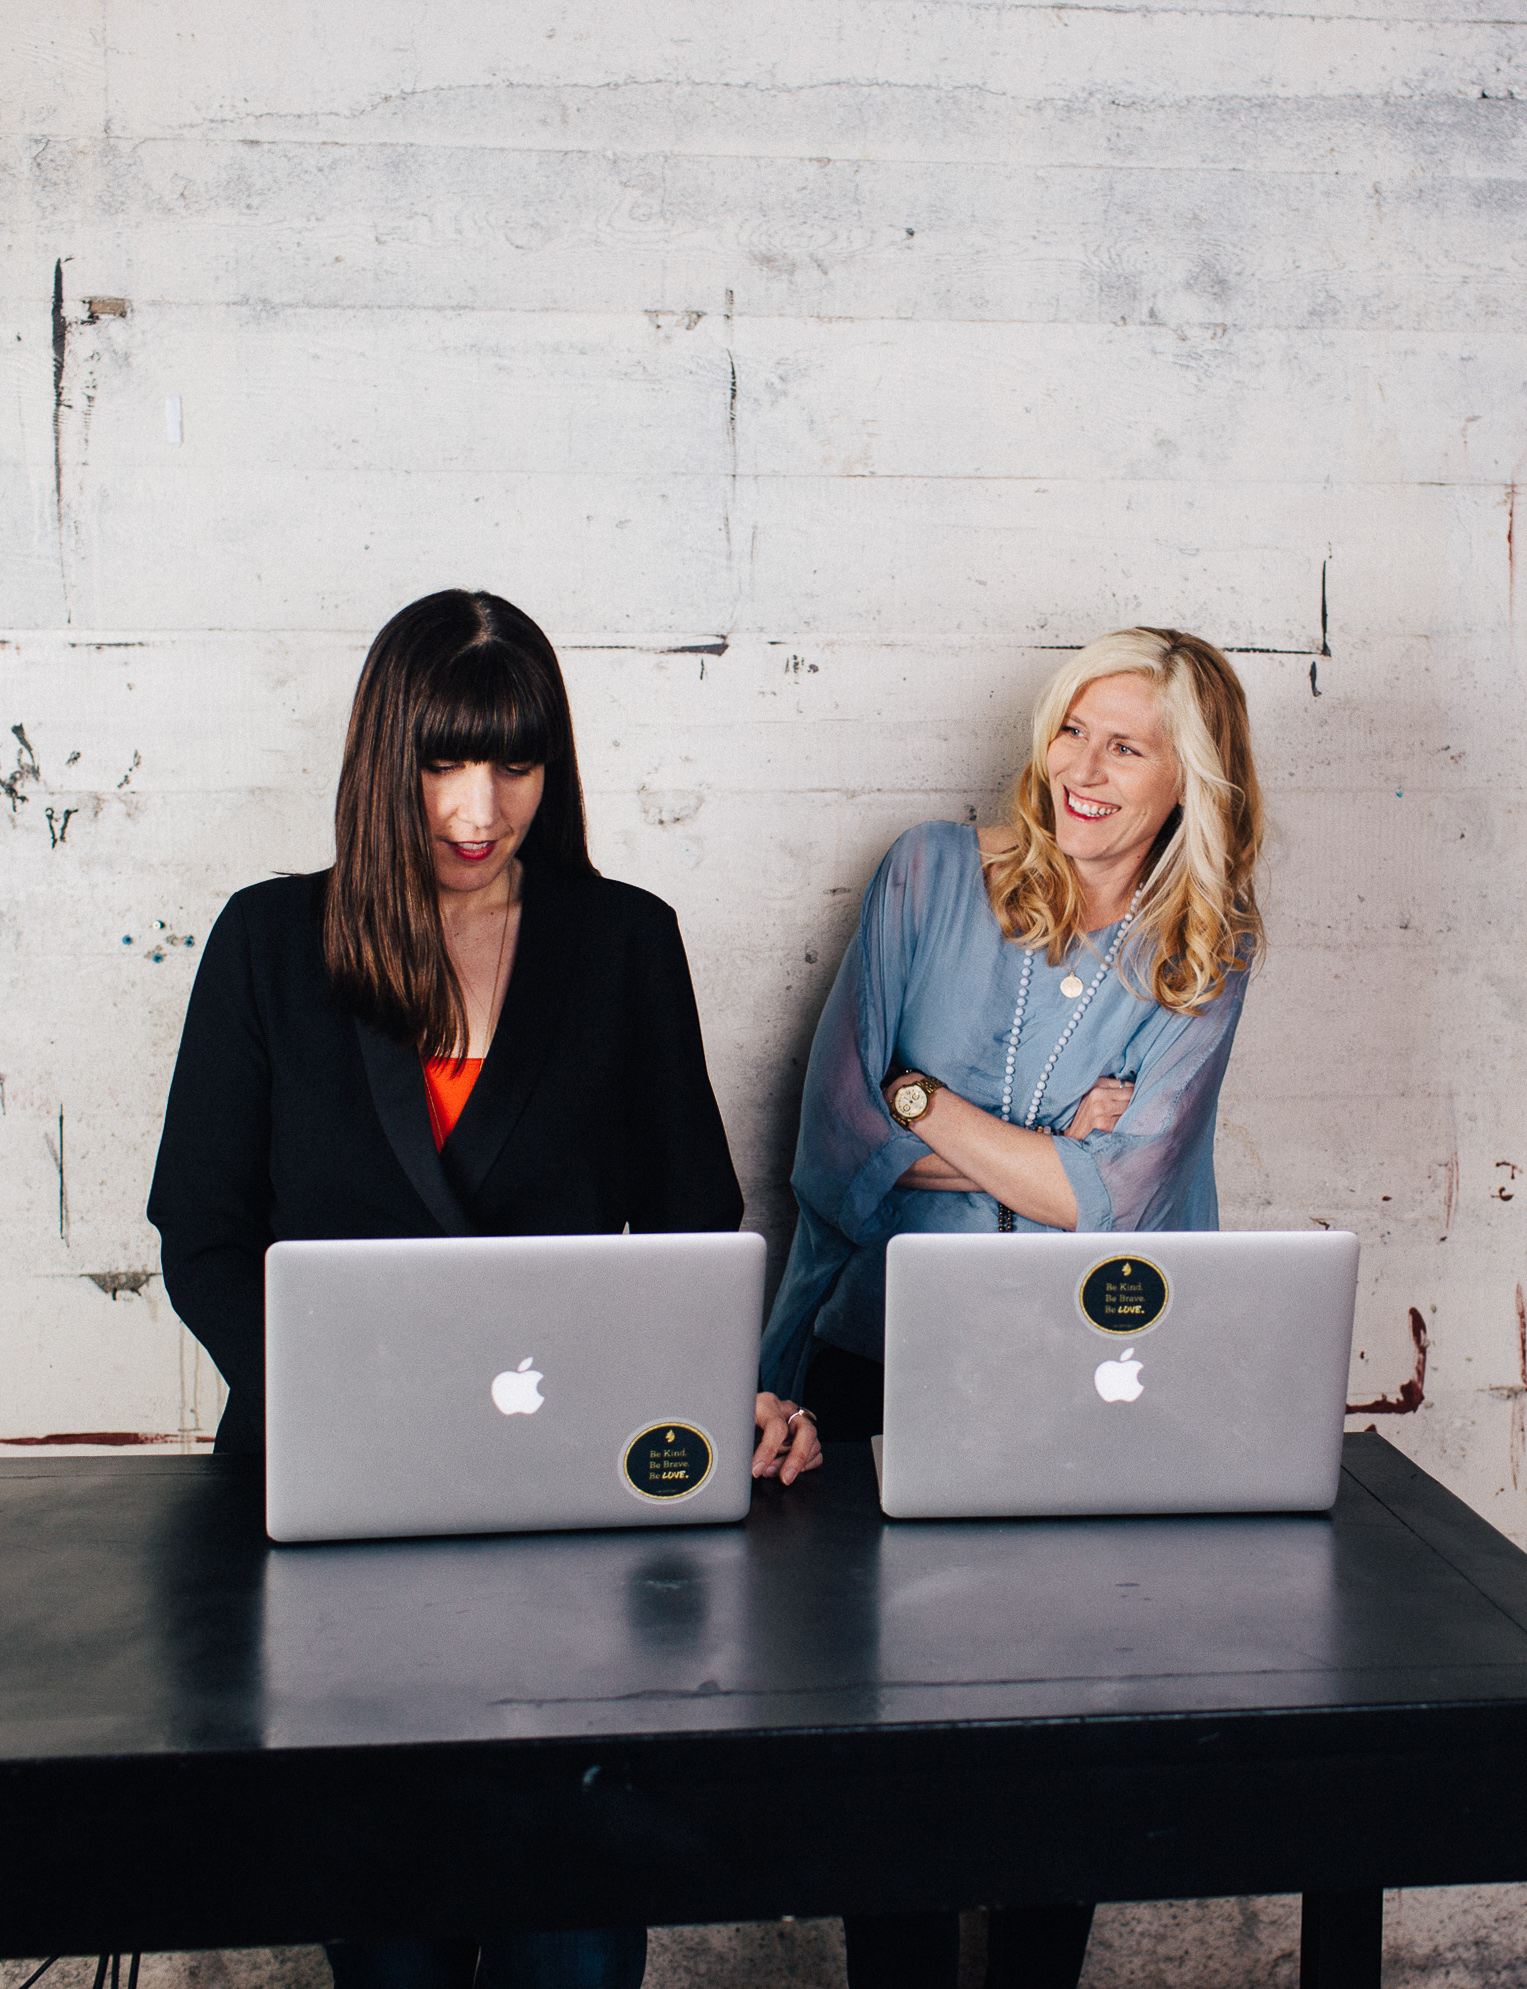 We're Jeni + Sandy (and we know our way around the Internet) - We left our careers in law and a clinical practice because we wanted the freedom and flexibility to live life on our terms and we felt the pull to be more present to our families. But we still felt drawn to contribute, to build, and to create.We joined forces in 2015, and together we've built a software company, an online school, and a growing media business. It's our mission to help you take your expertise and create an online business so you can live life on your terms.